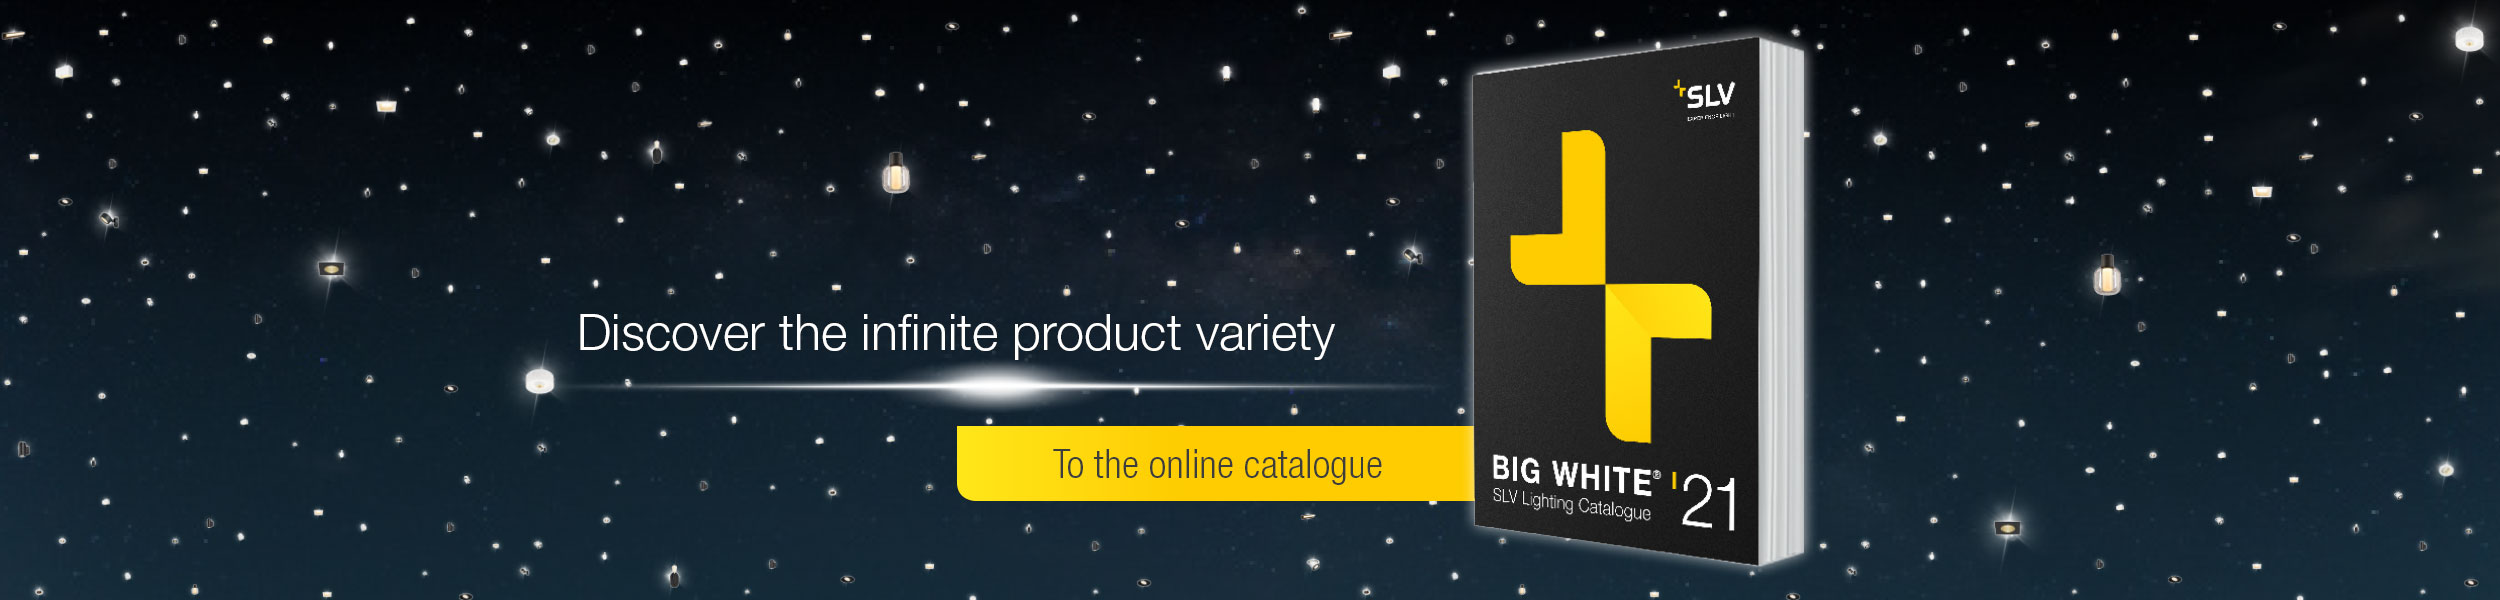 New catalogue from SLV: Big White® 2021